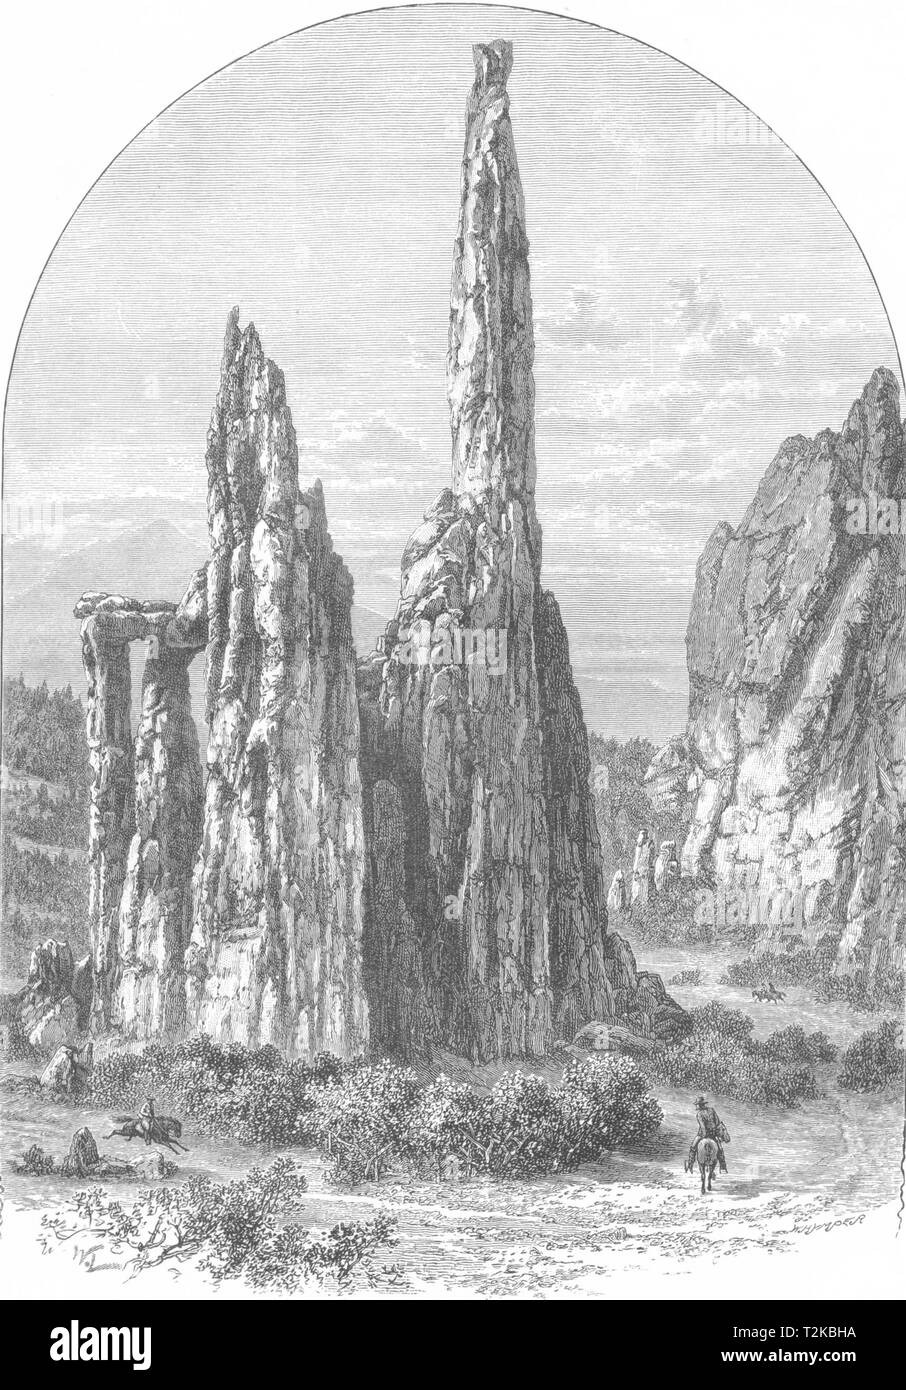 ILLINOIS. The Cathedral Spires in the Garden of the Gods 1891 old print - Stock Image